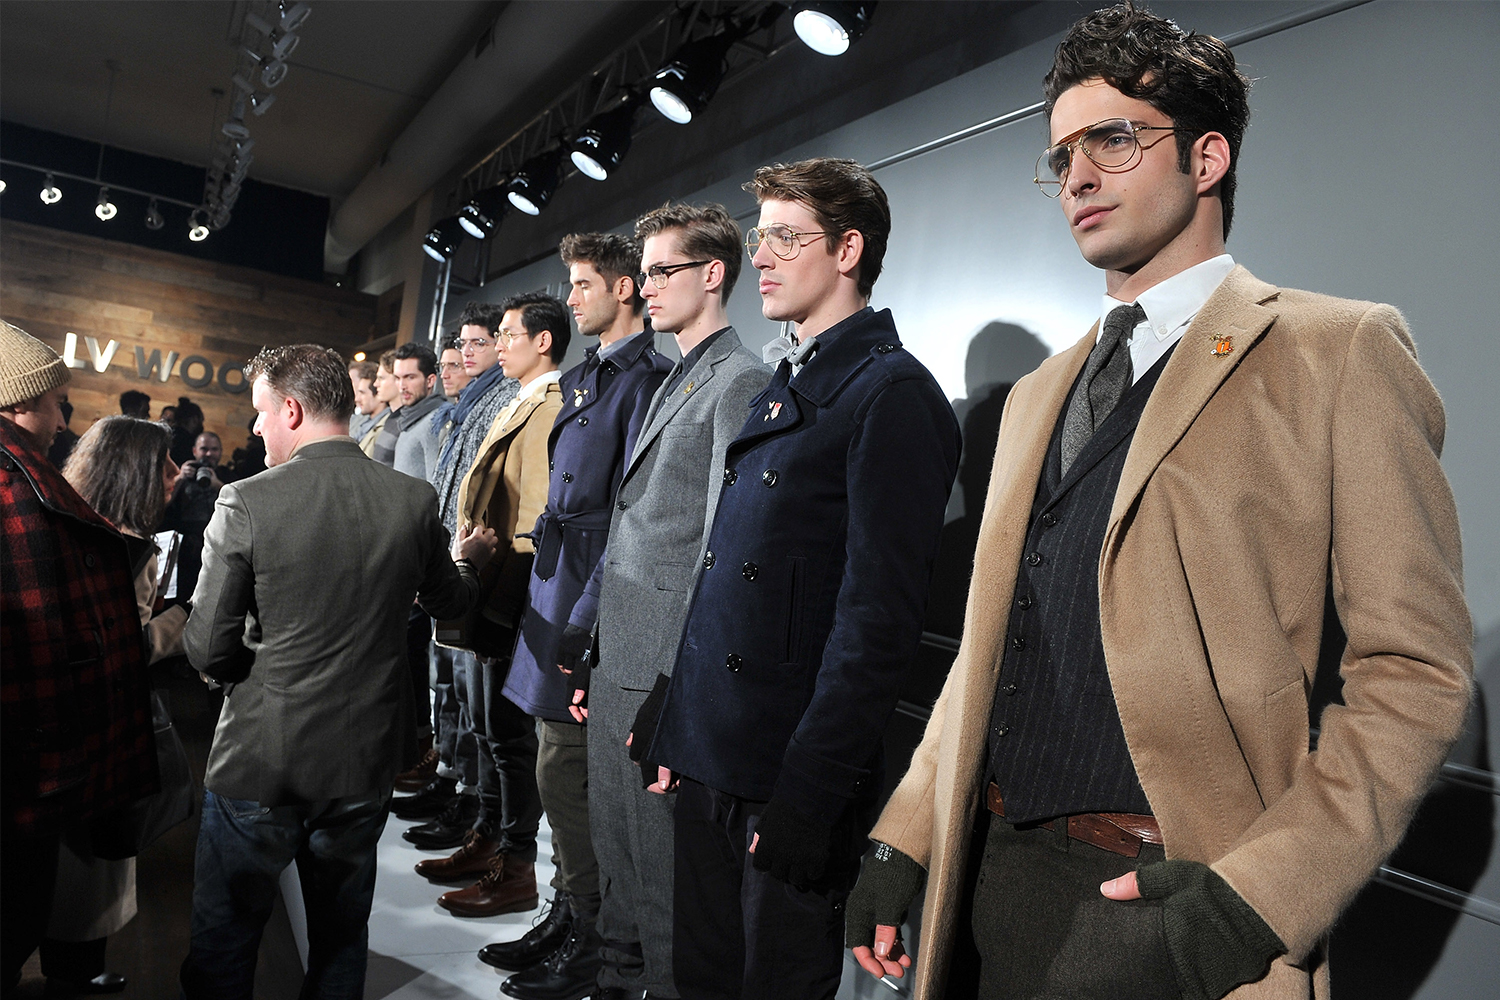 A line of models wearing clothes designed by menswear designer Todd Snyder in his fall 2012 New York Fashion Week show at LV Wood